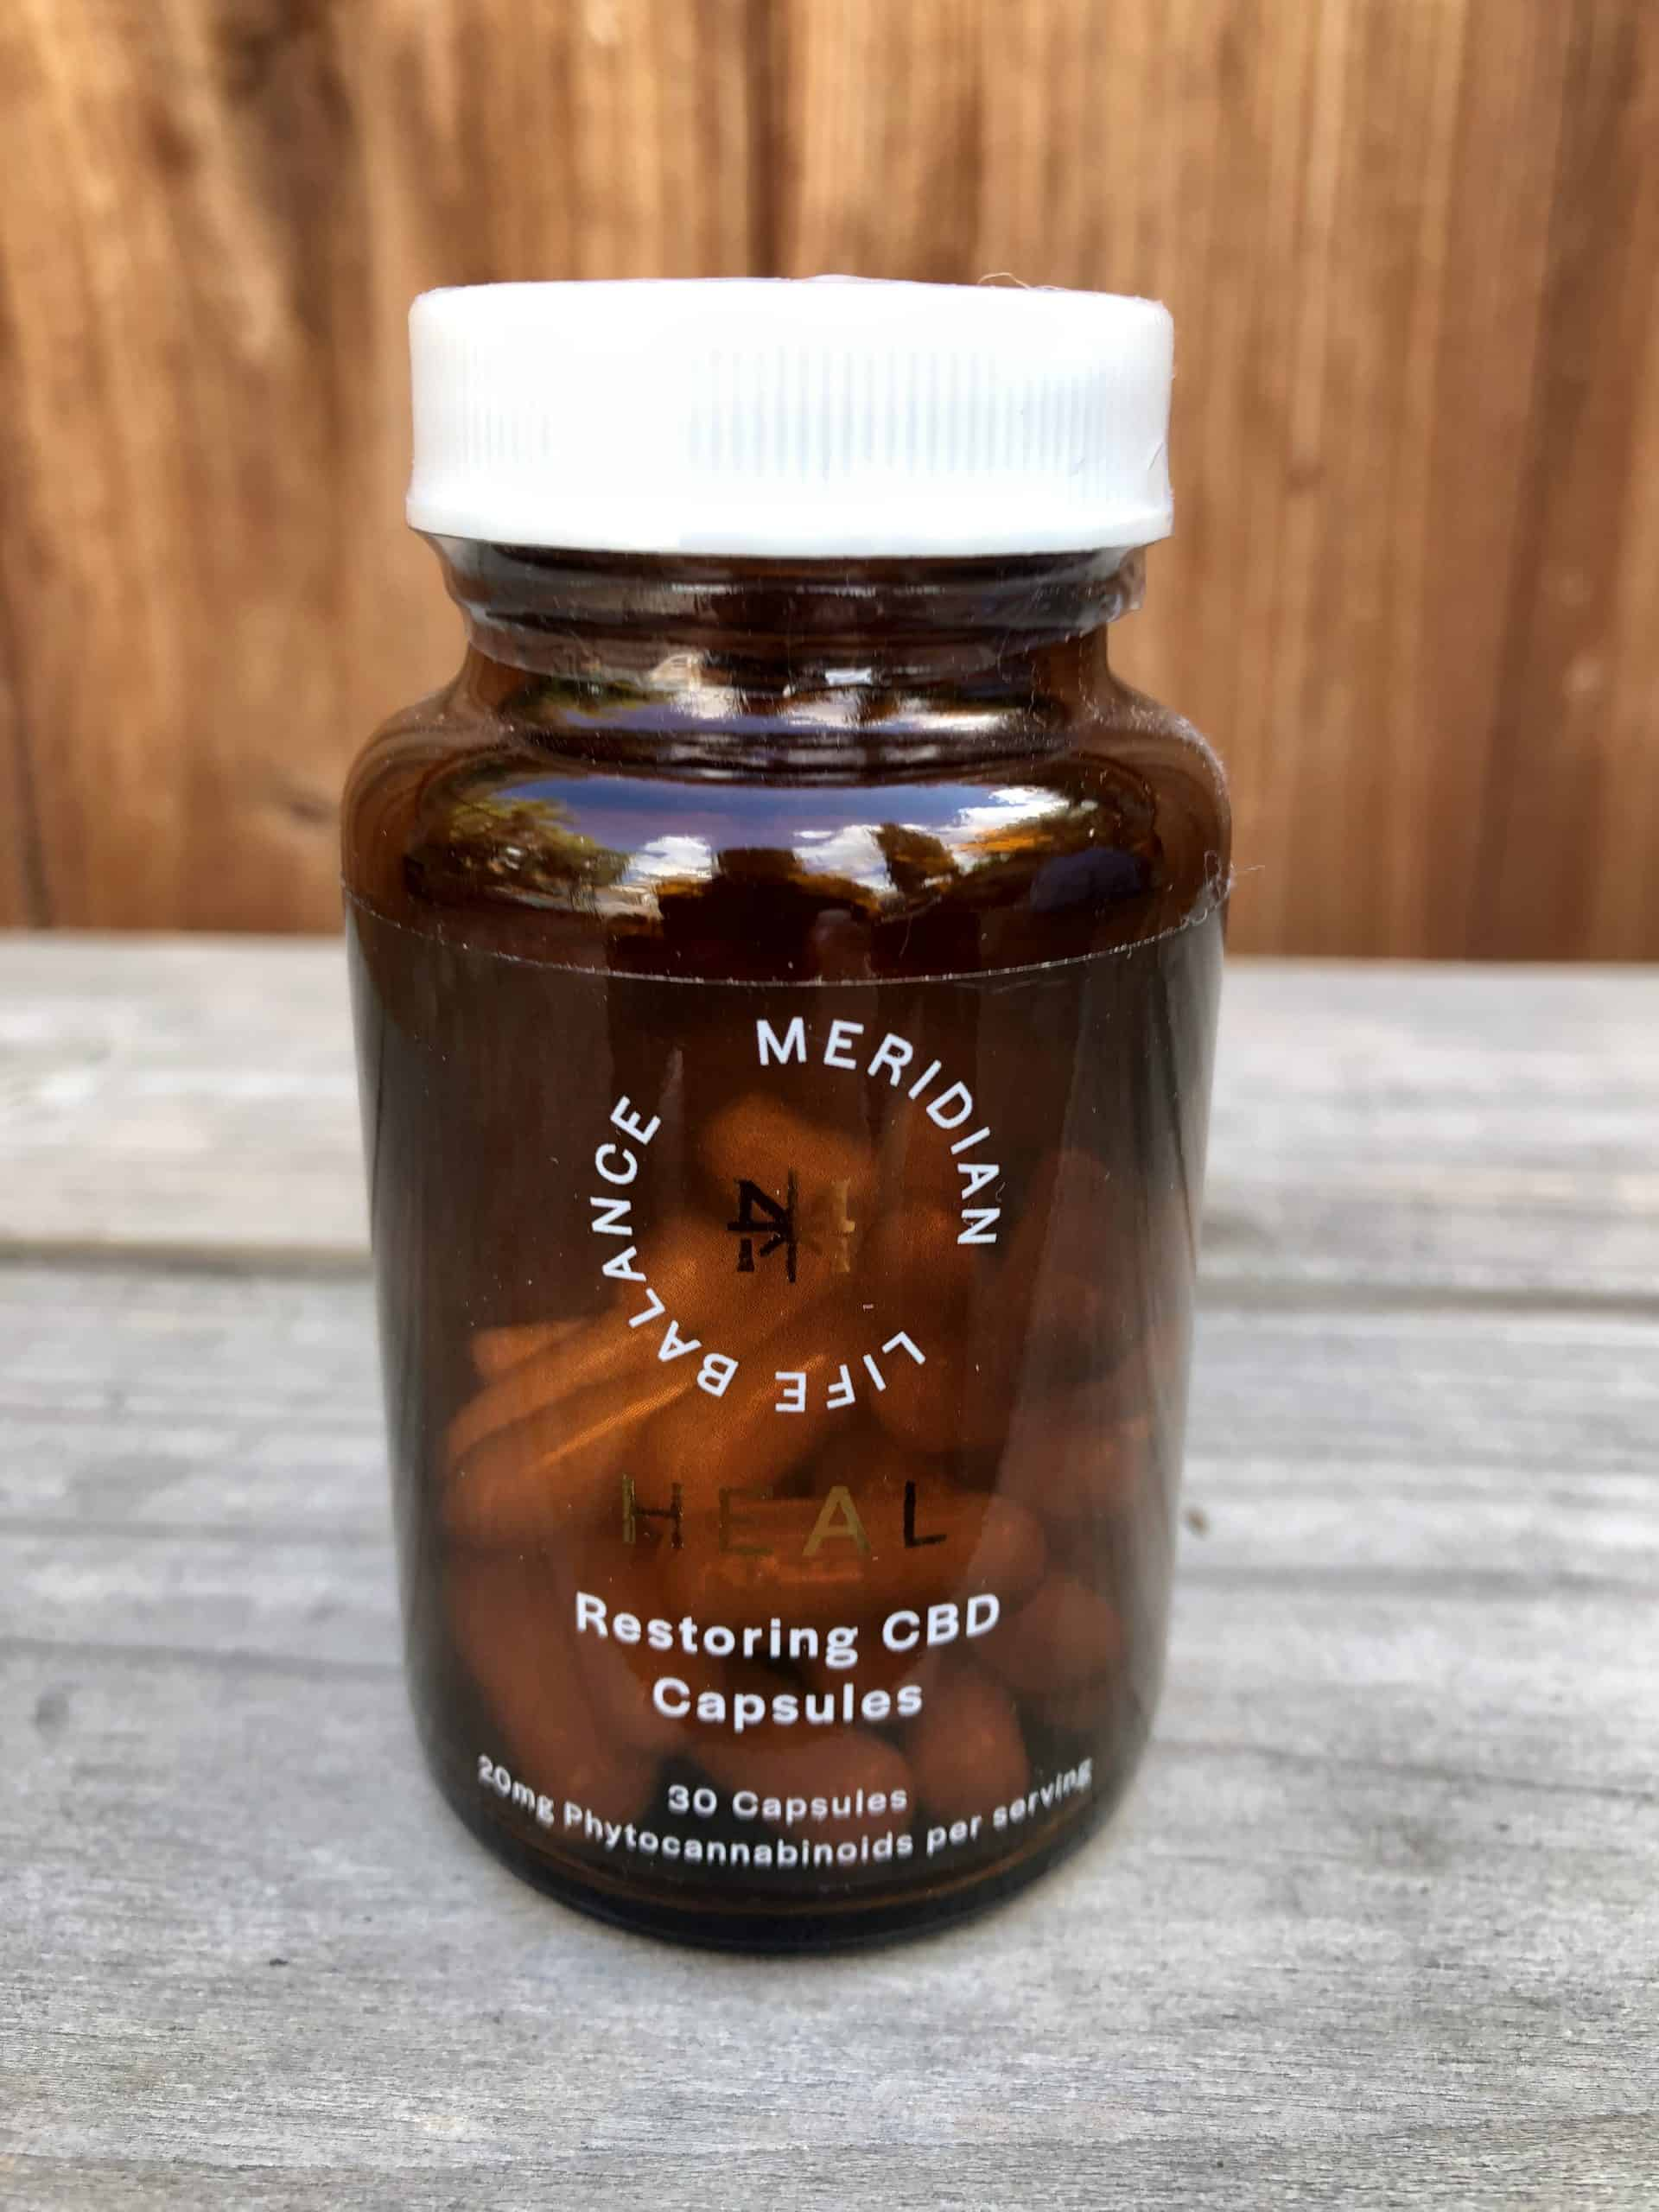 meridian life balance restoring cbd capsules save on cannabis review